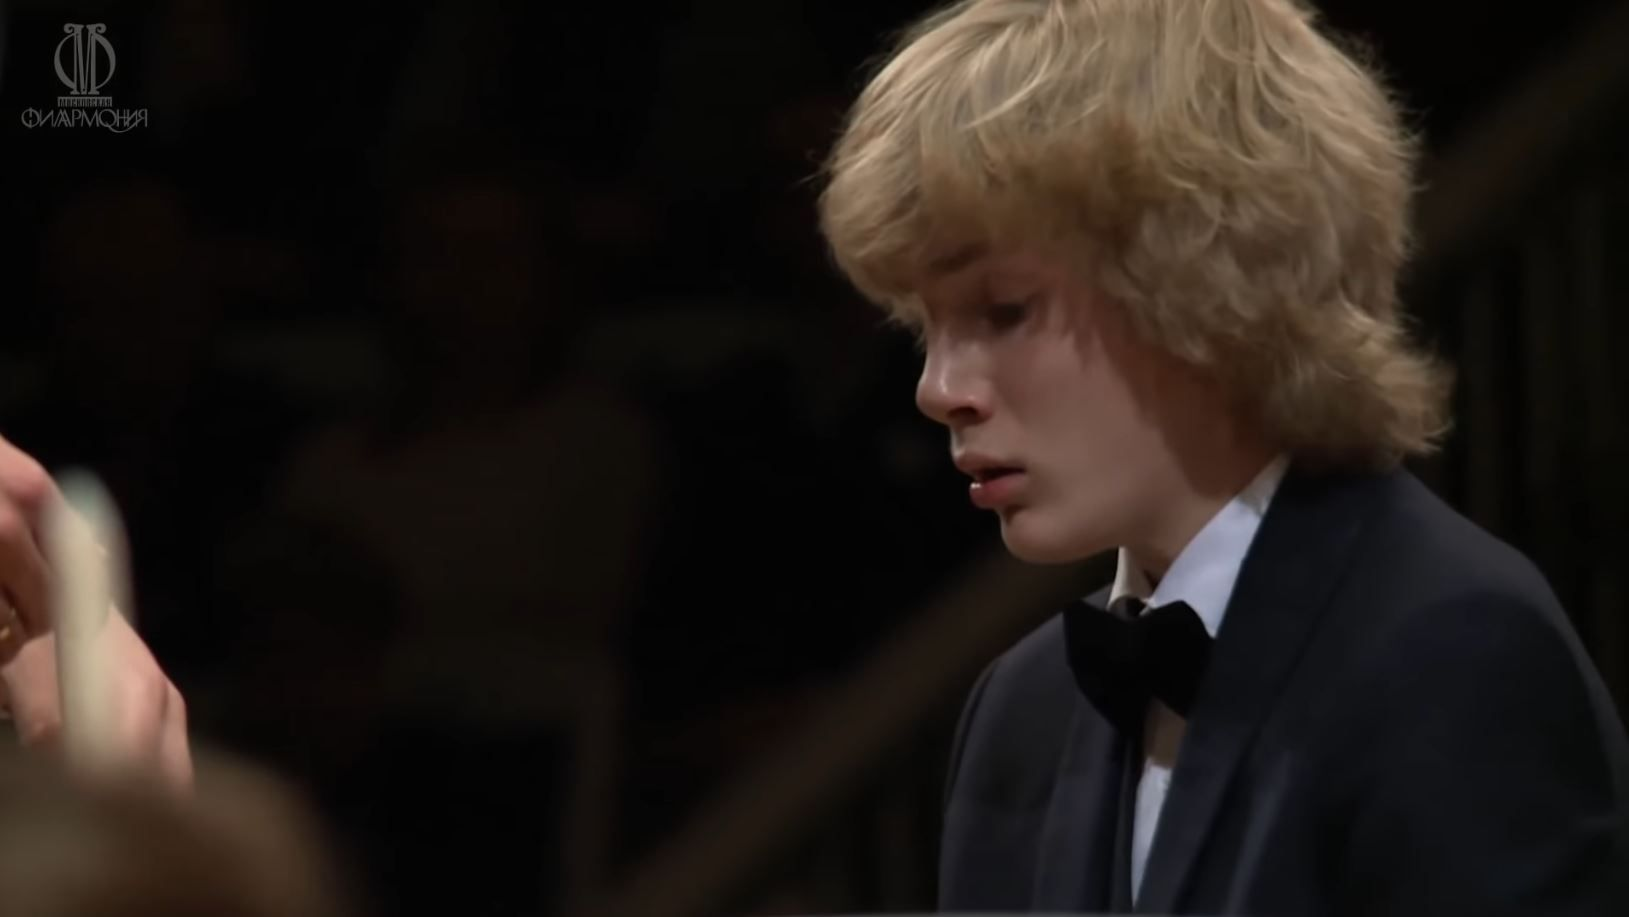 Pyotr Ilyich Tchaikovsky Piano Concerto No 1 In B Flat Minor Ivan Bessonov Russian National Youth Symphony Or Symphony Orchestra Orchestra New Year Concert